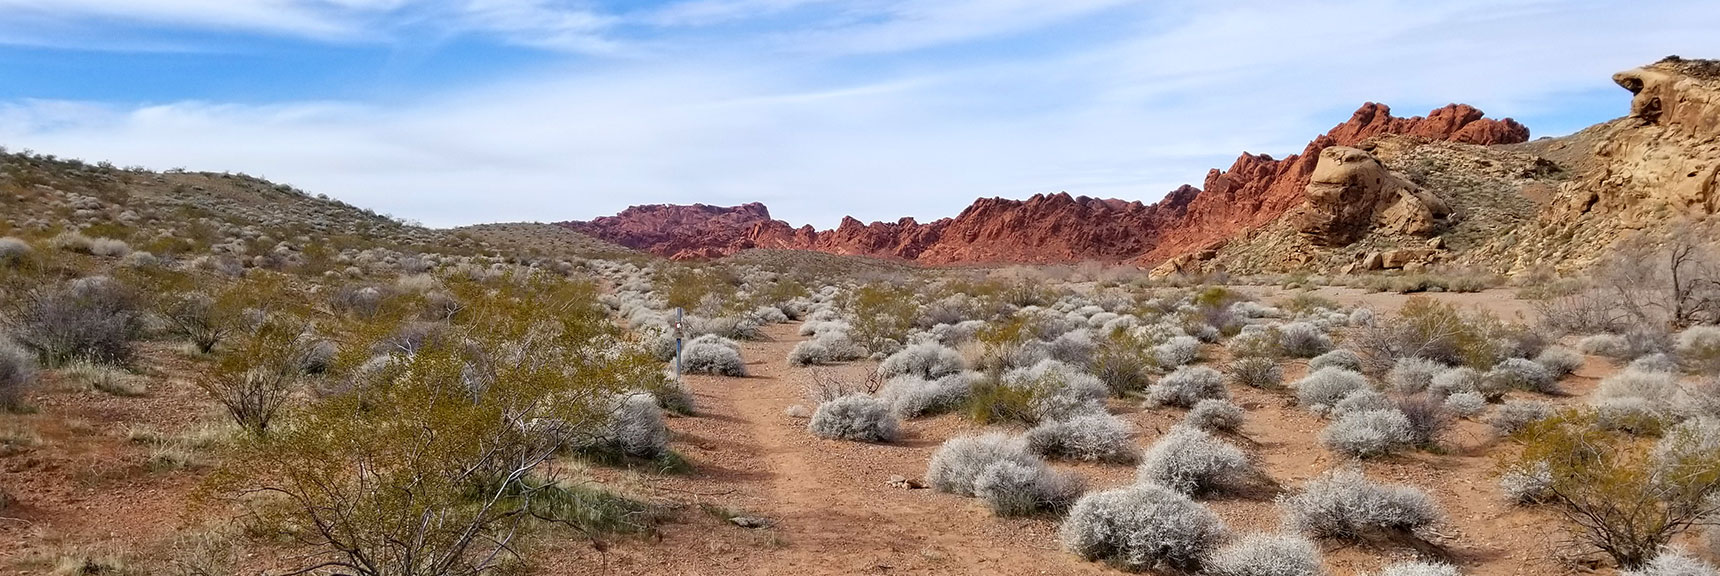 Heading Back West on the Old Arrowhead Trail in Valley of Fire State Park, Nevada